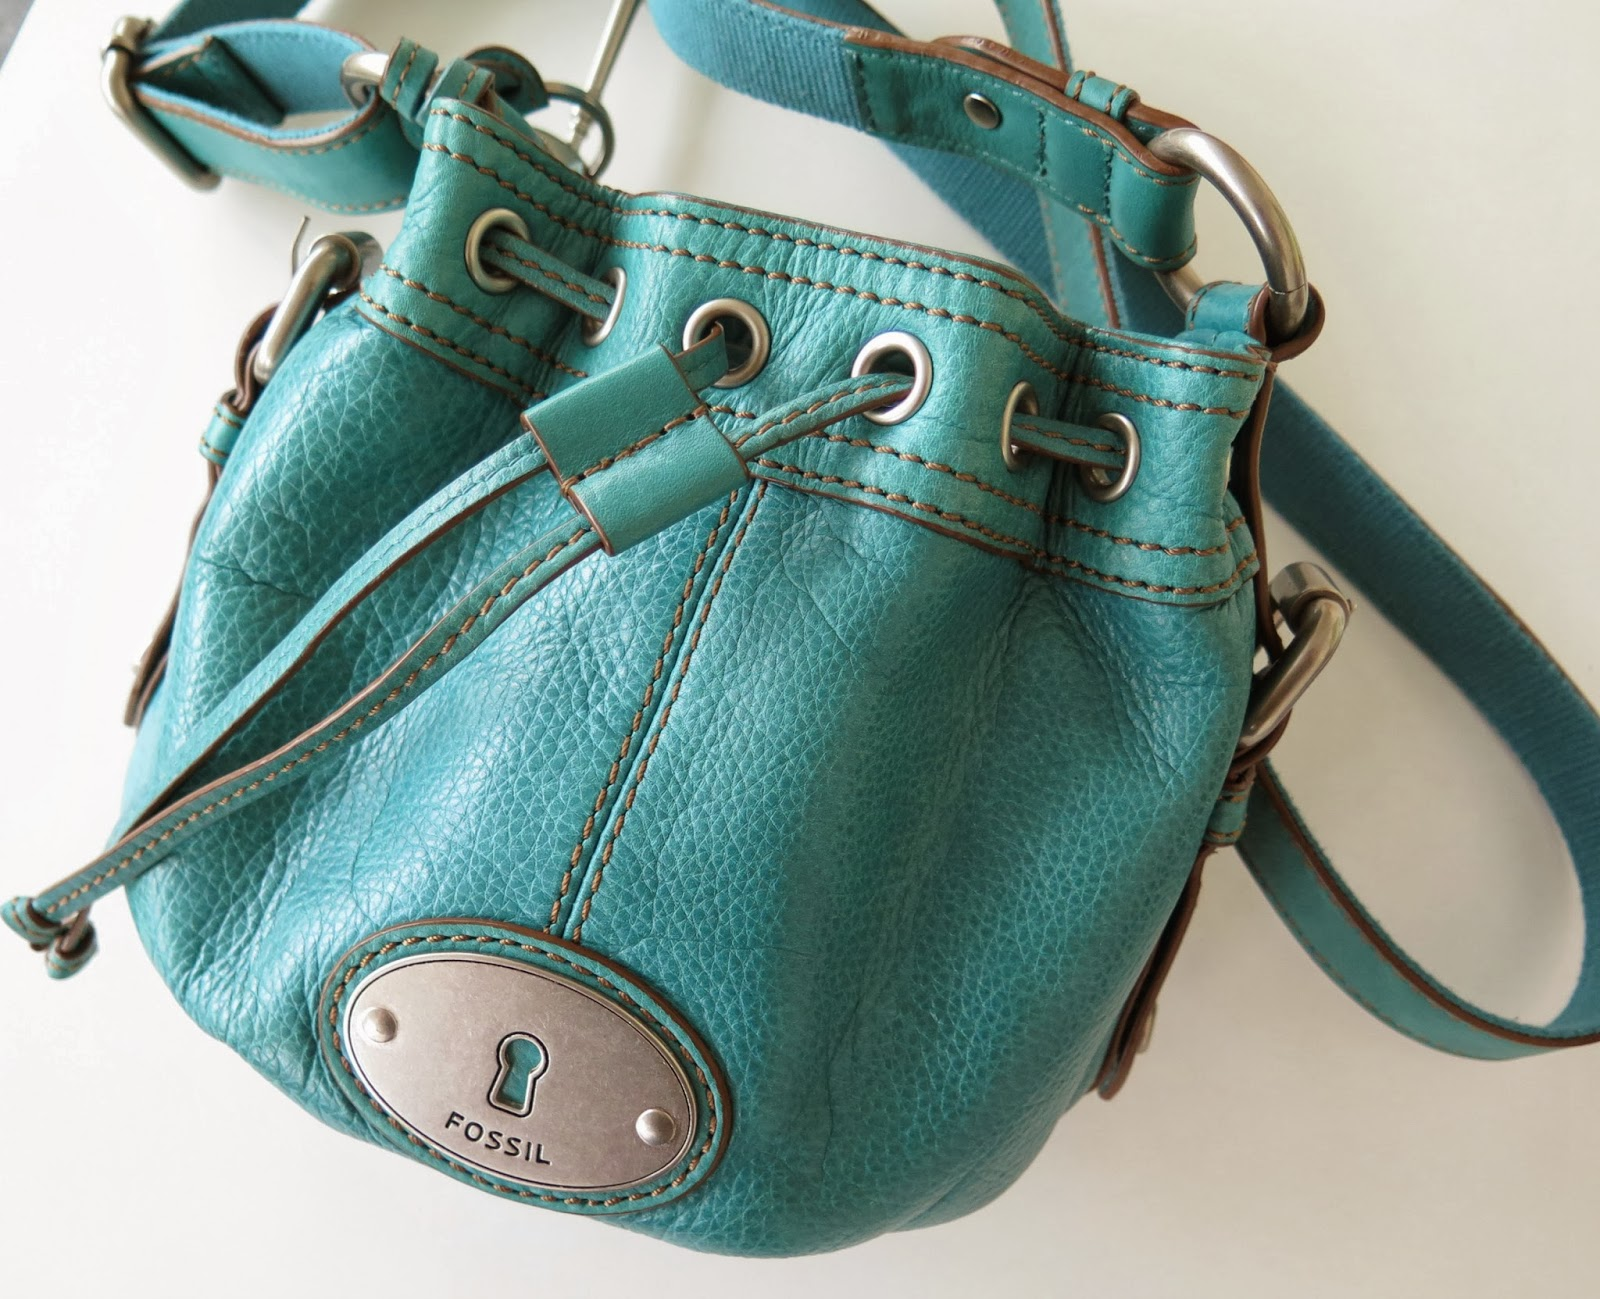 Fossil Bag, Michelle Louise Love